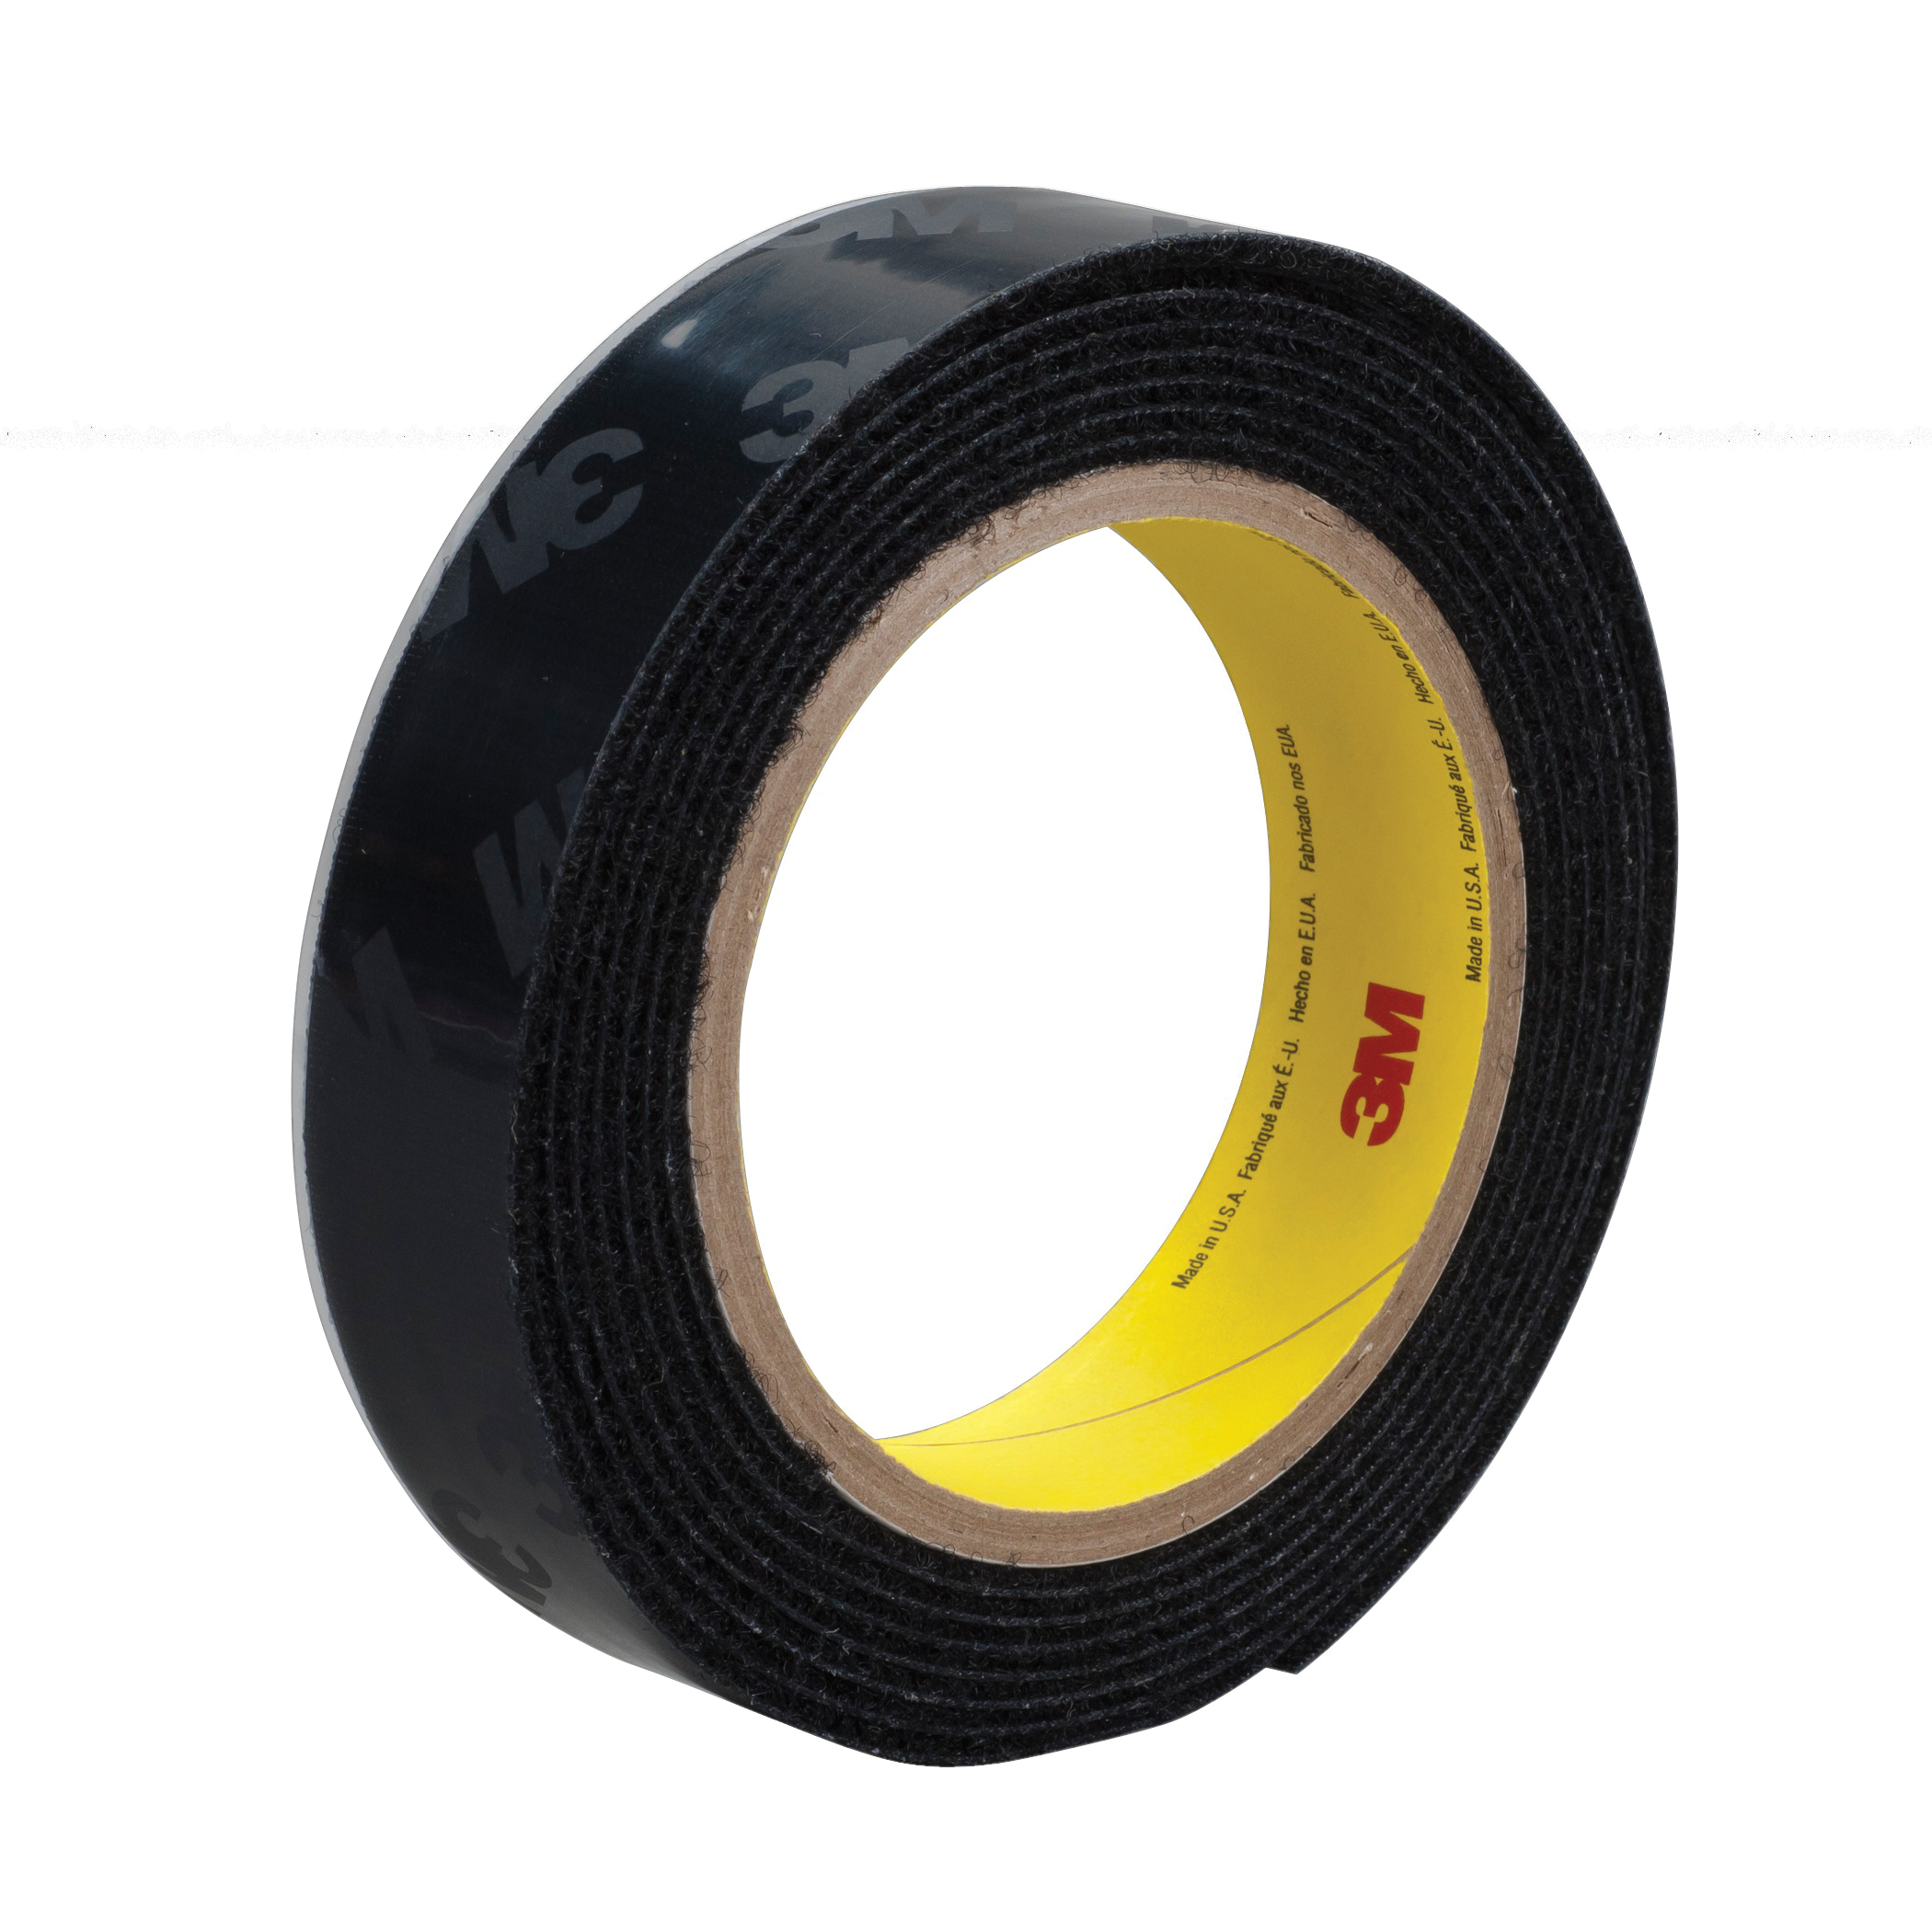 3M™ 021200-65621 General Performance Reclosable Loop Fastener Tape, 50 yd L x 2 in W, 0.15 in THK Engaged, High Tack Rubber Adhesive, Woven Nylon Backing, Black